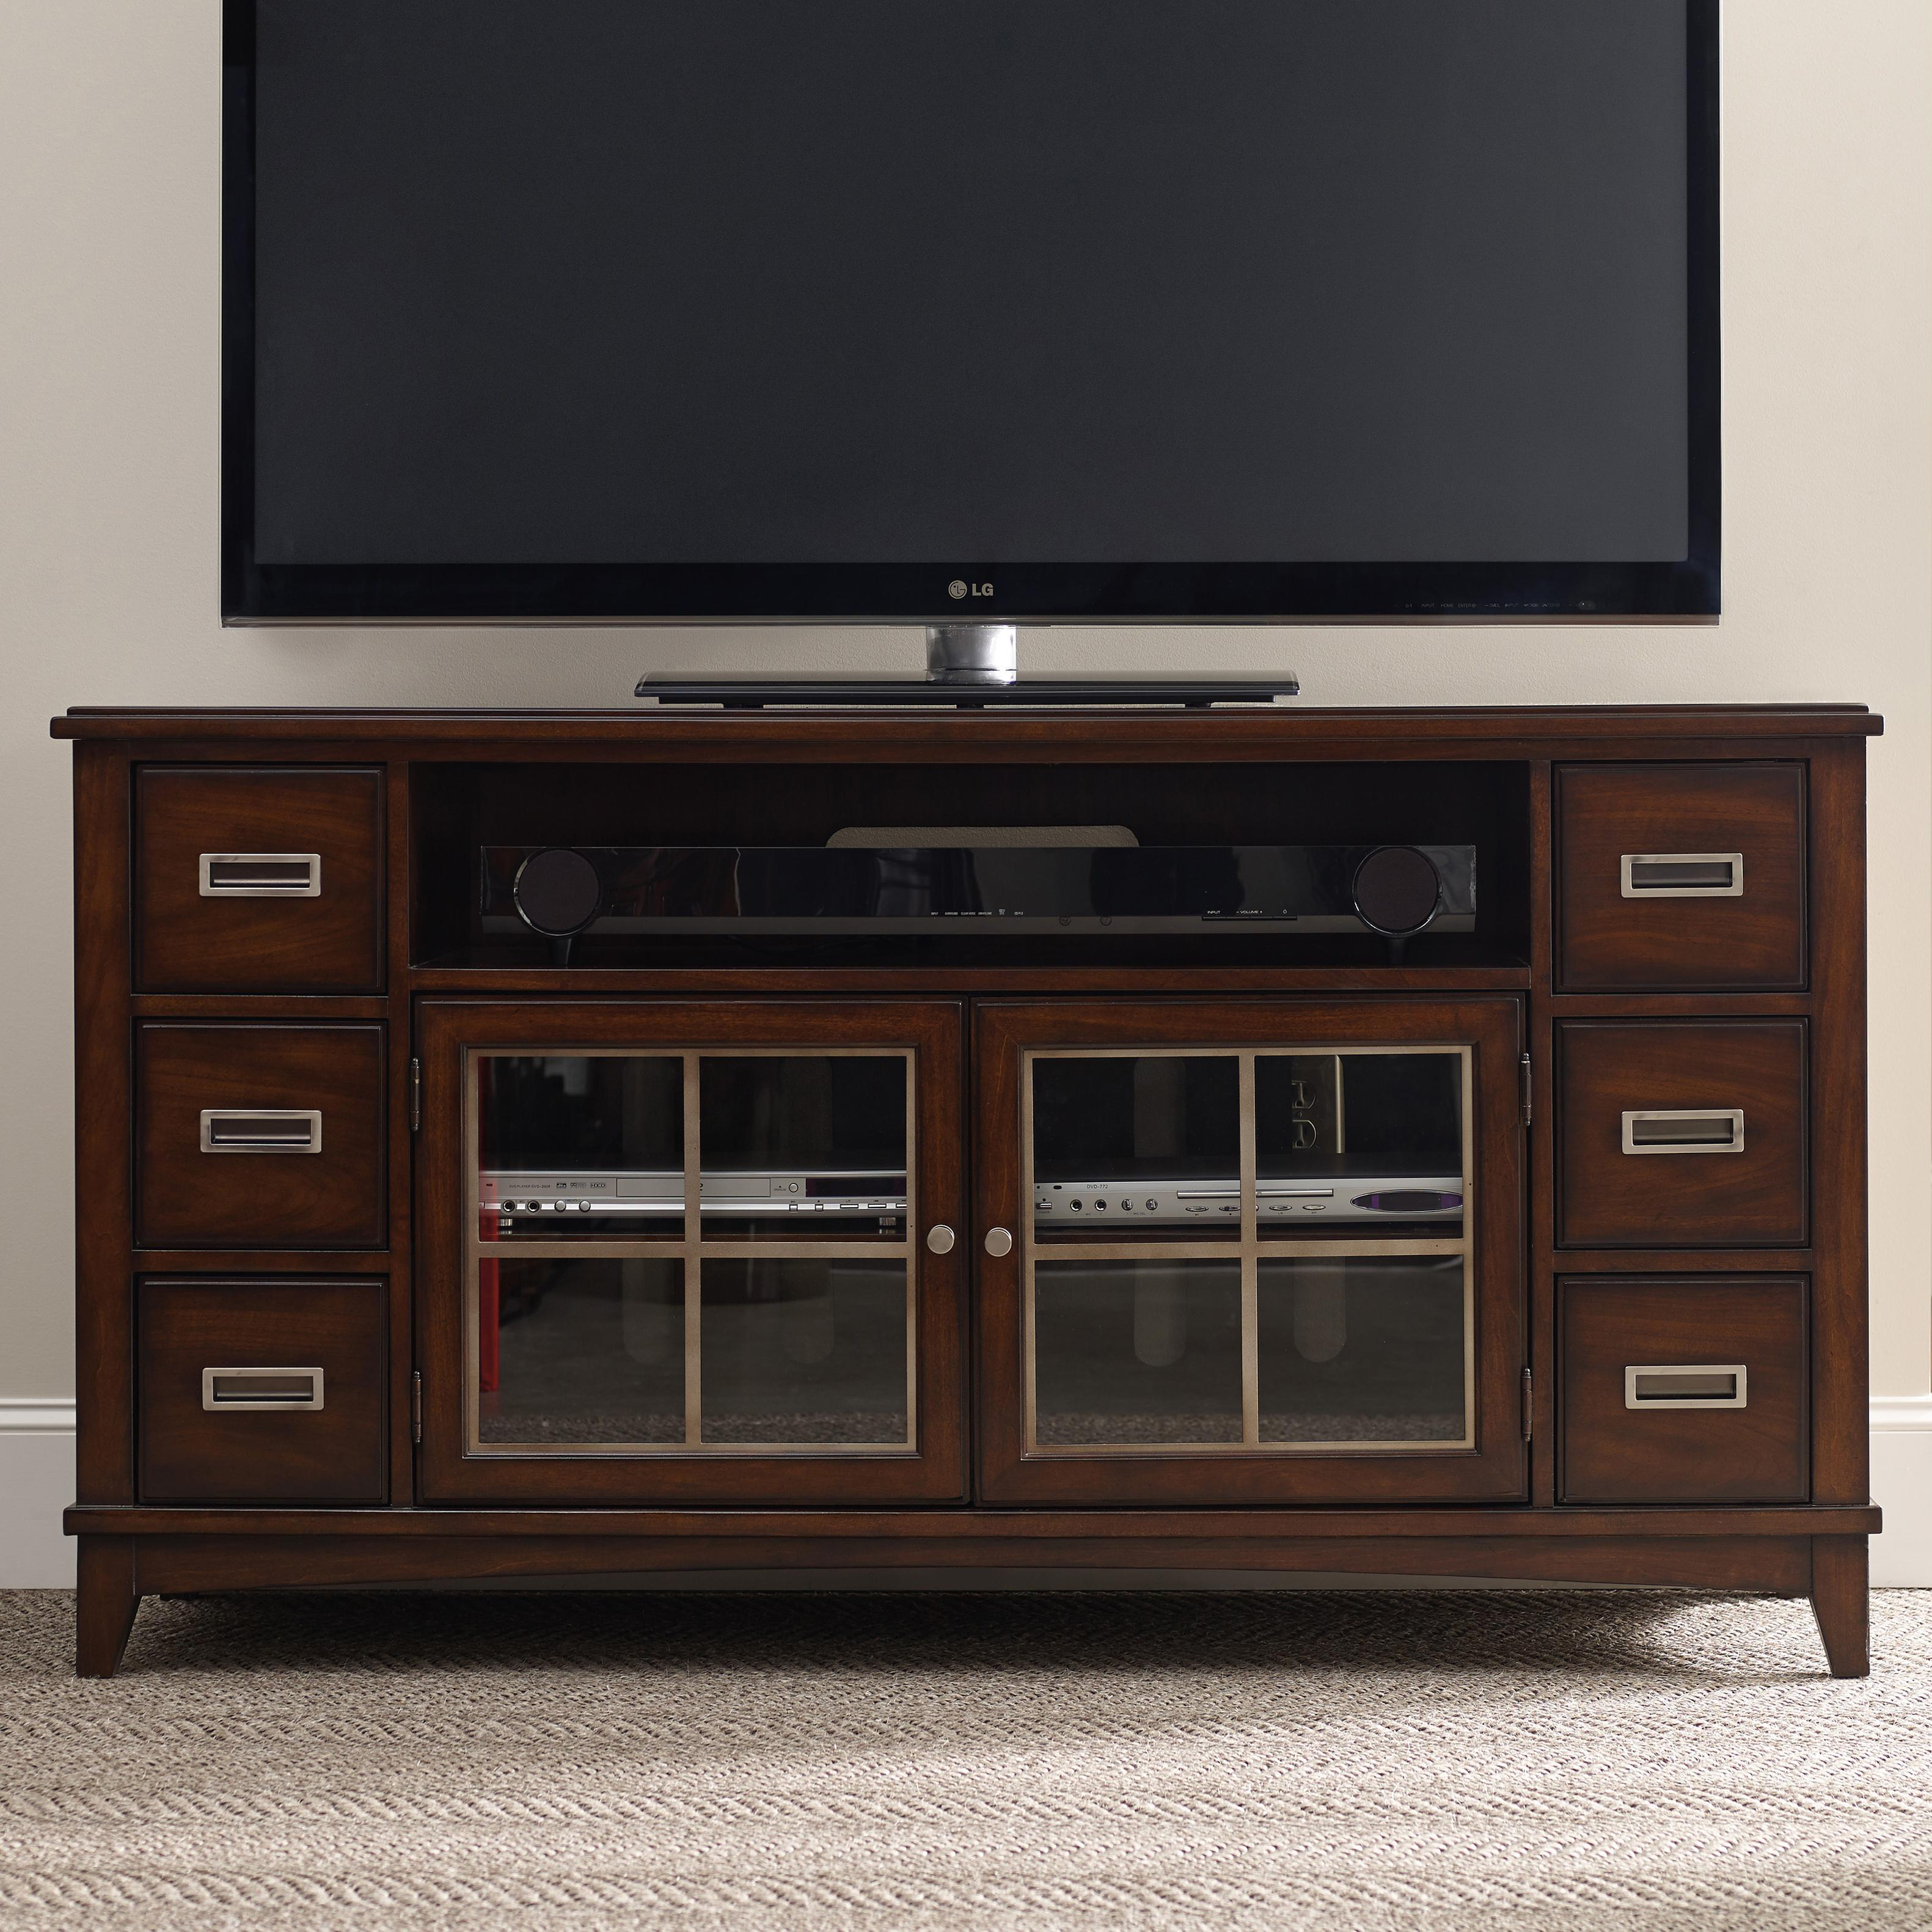 Hooker Furniture Latitude Entertainment Console - Item Number: 5167-55458